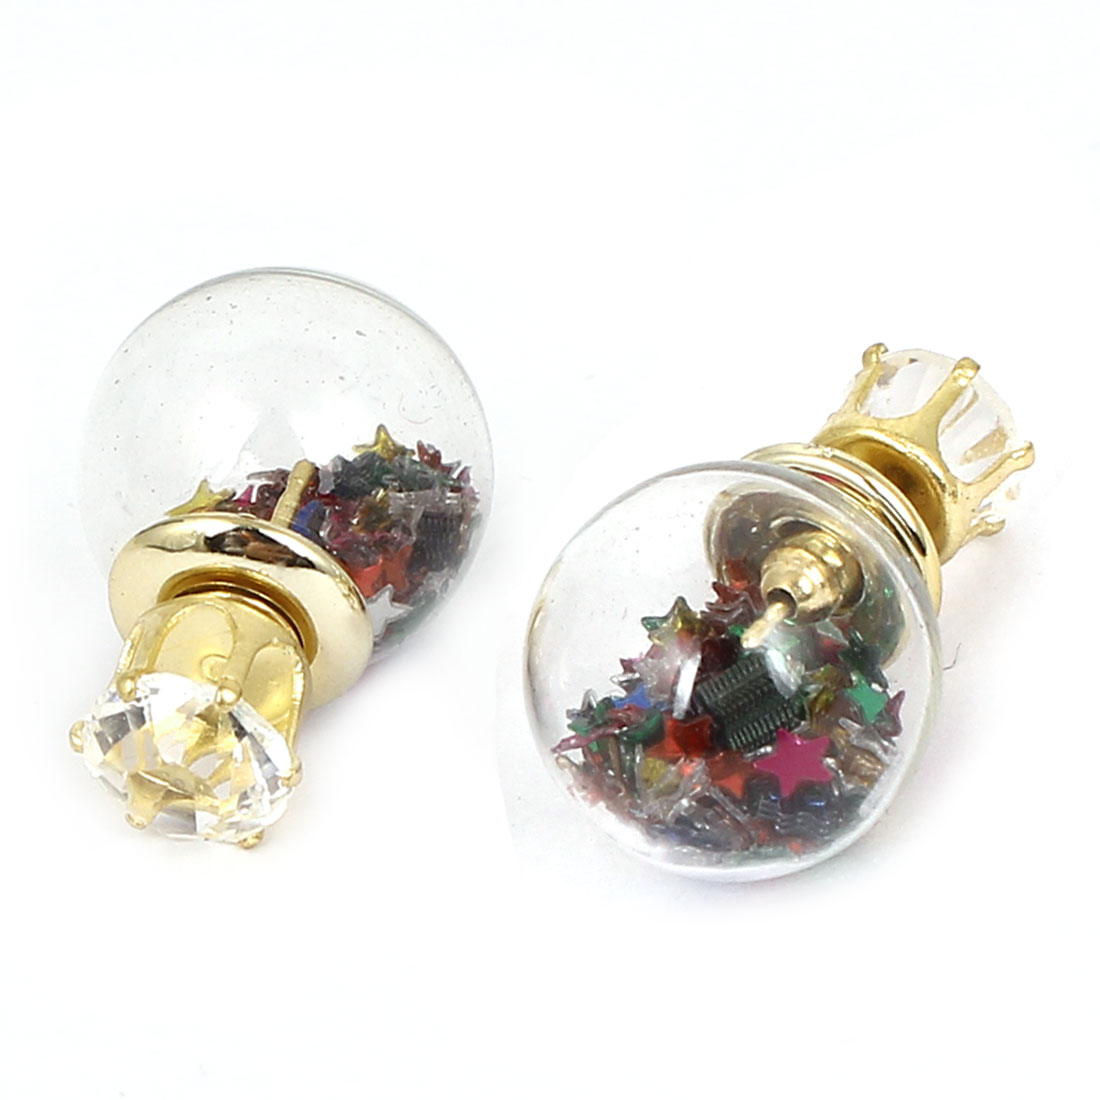 Women Faux Crystal Inlaid Round Bulb Design Double Sides Stud Earrings Colorful Pair